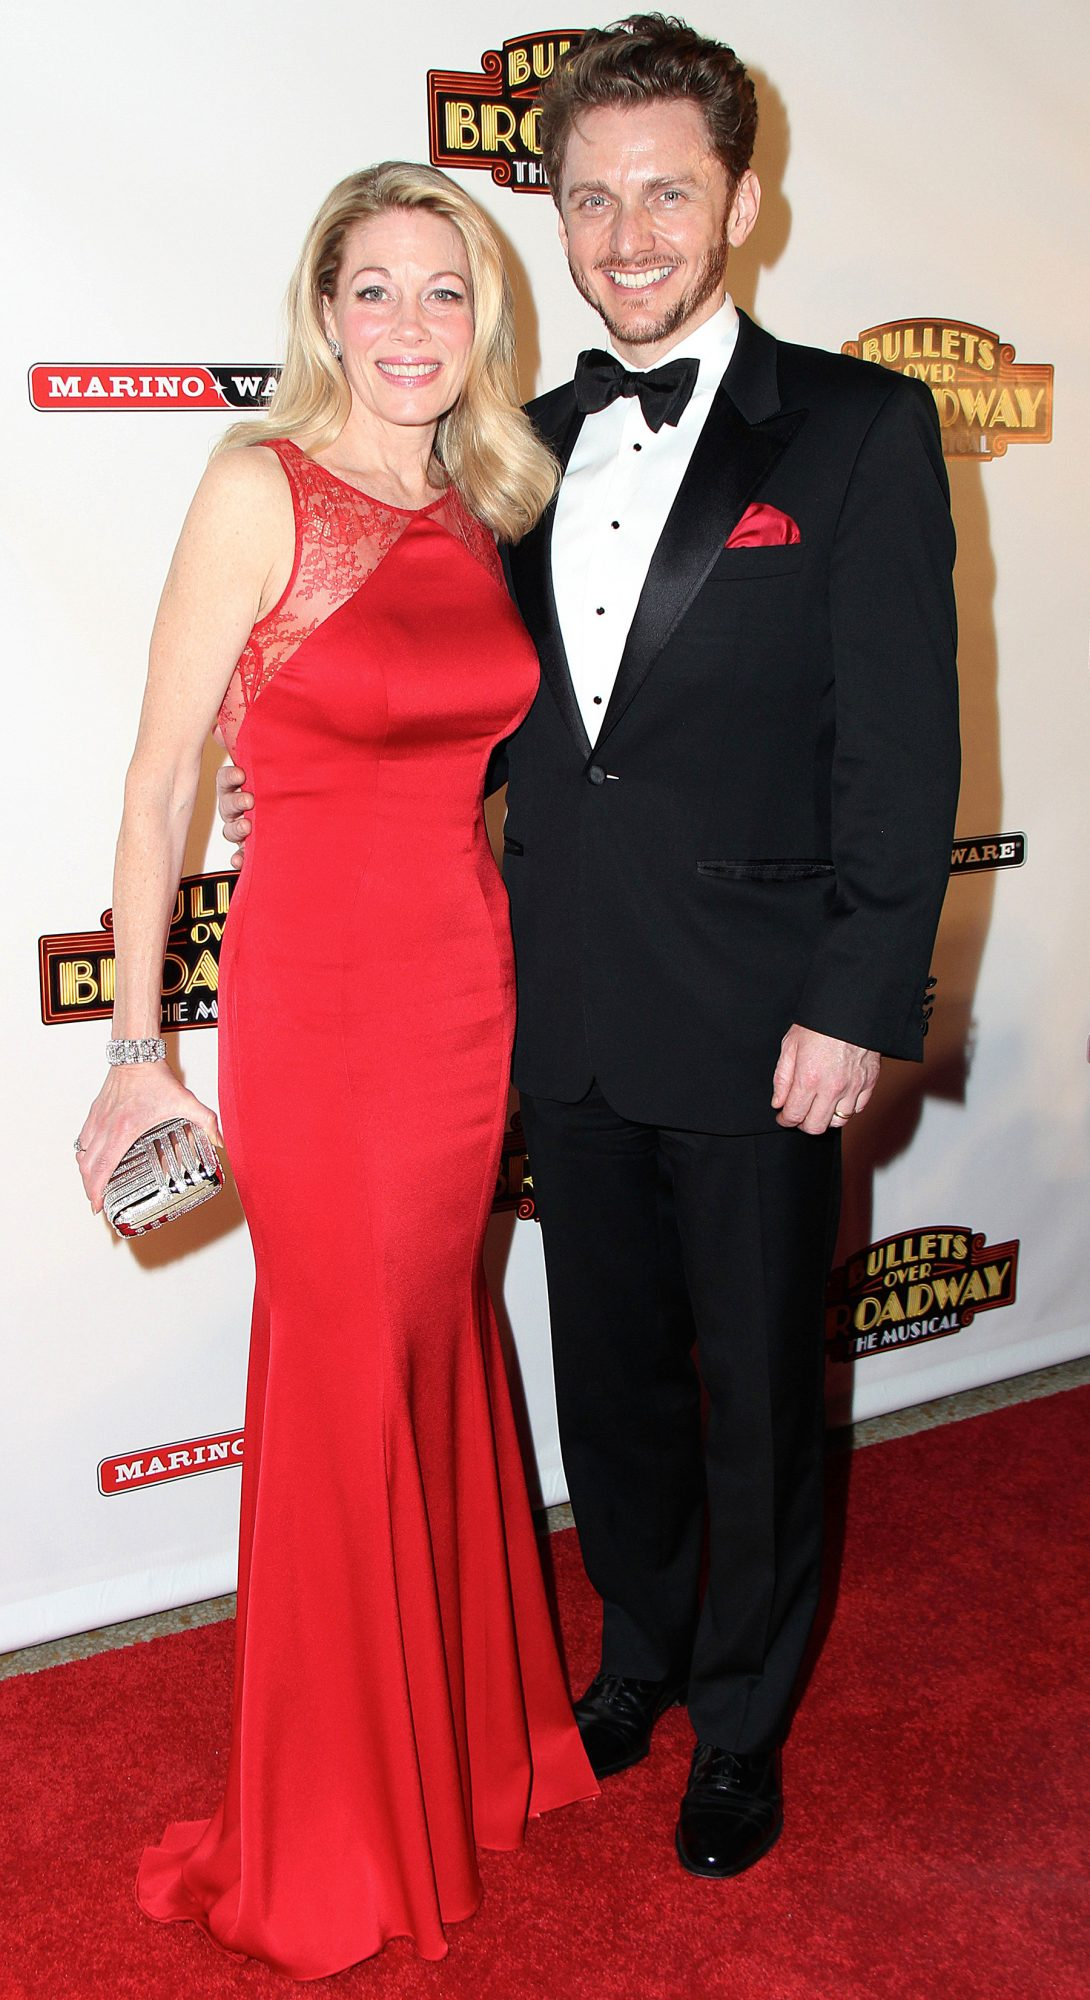 'Bullets Over Broadway' play opening night, New York, America - 10 Apr 2014